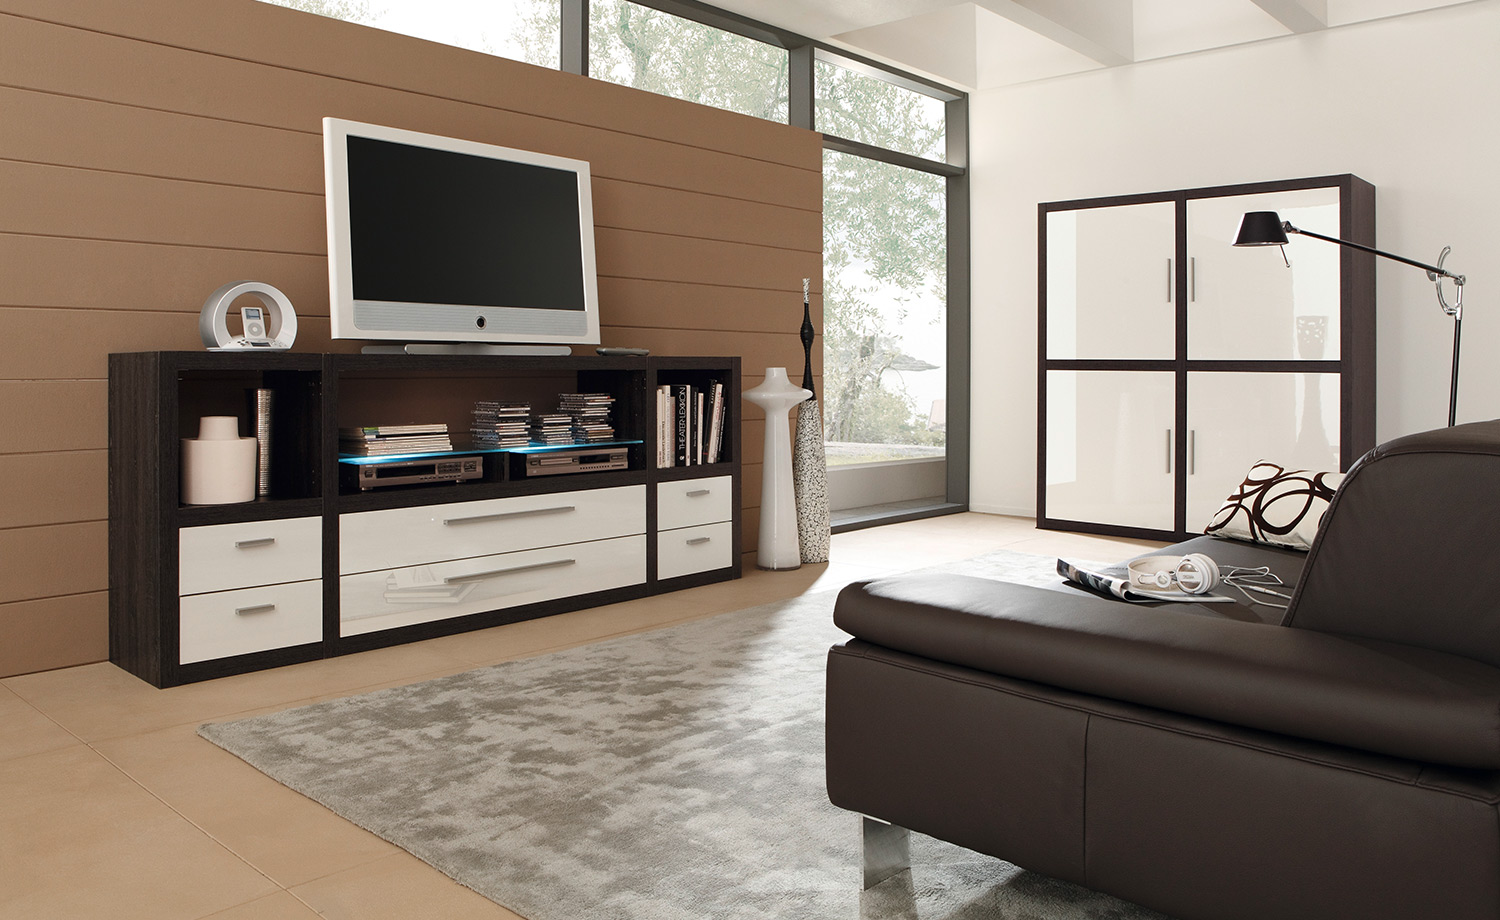 moderne einrichtungsideen f r das wohnzimmer. Black Bedroom Furniture Sets. Home Design Ideas